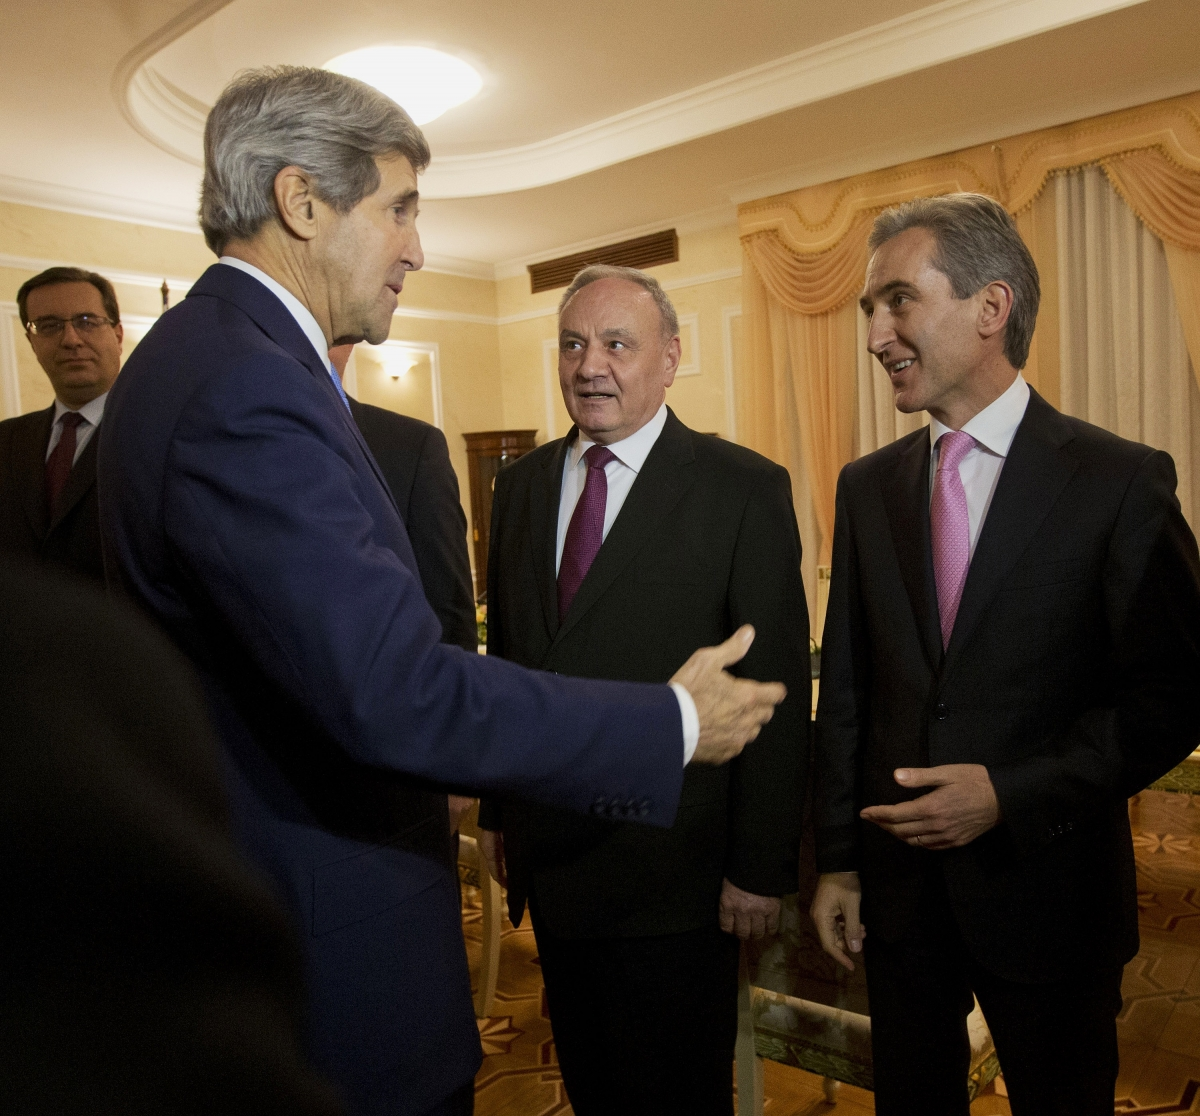 Russia Moldova Ukraine Kerry Crisis United States European Union